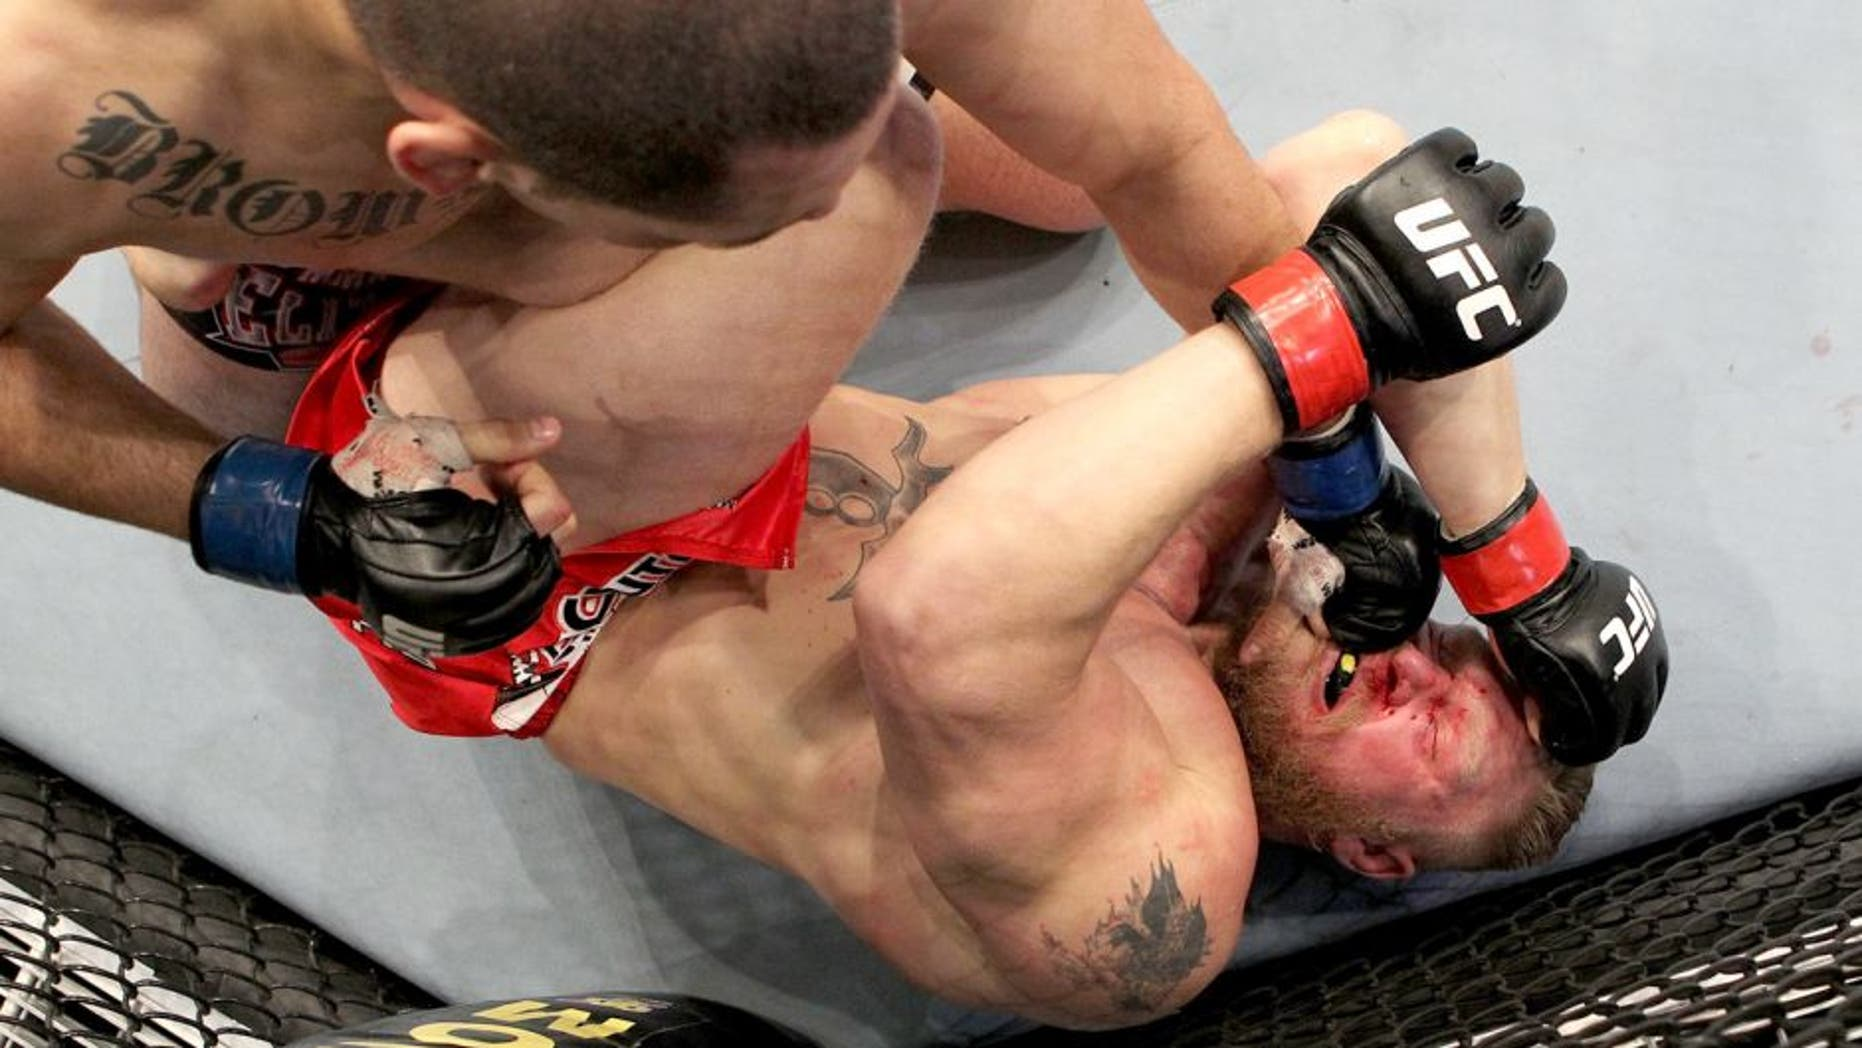 ANAHEIM, CA - OCTOBER 23: (L-R) Cain Velasquez connects on a left to the face of Brock Lesnar in the first round during the heavyweight title bout during UFC 121 on October 23, 2010 in Anaheim, California. Velasquez defeated Lenar by first round TKO to become the new UFC heavyweight champion. (Photo by Josh Hedges/Zuffa LLC/Zuffa LLC via Getty Images) *** Local Caption *** Brock Lesnar;Cain Velasquez